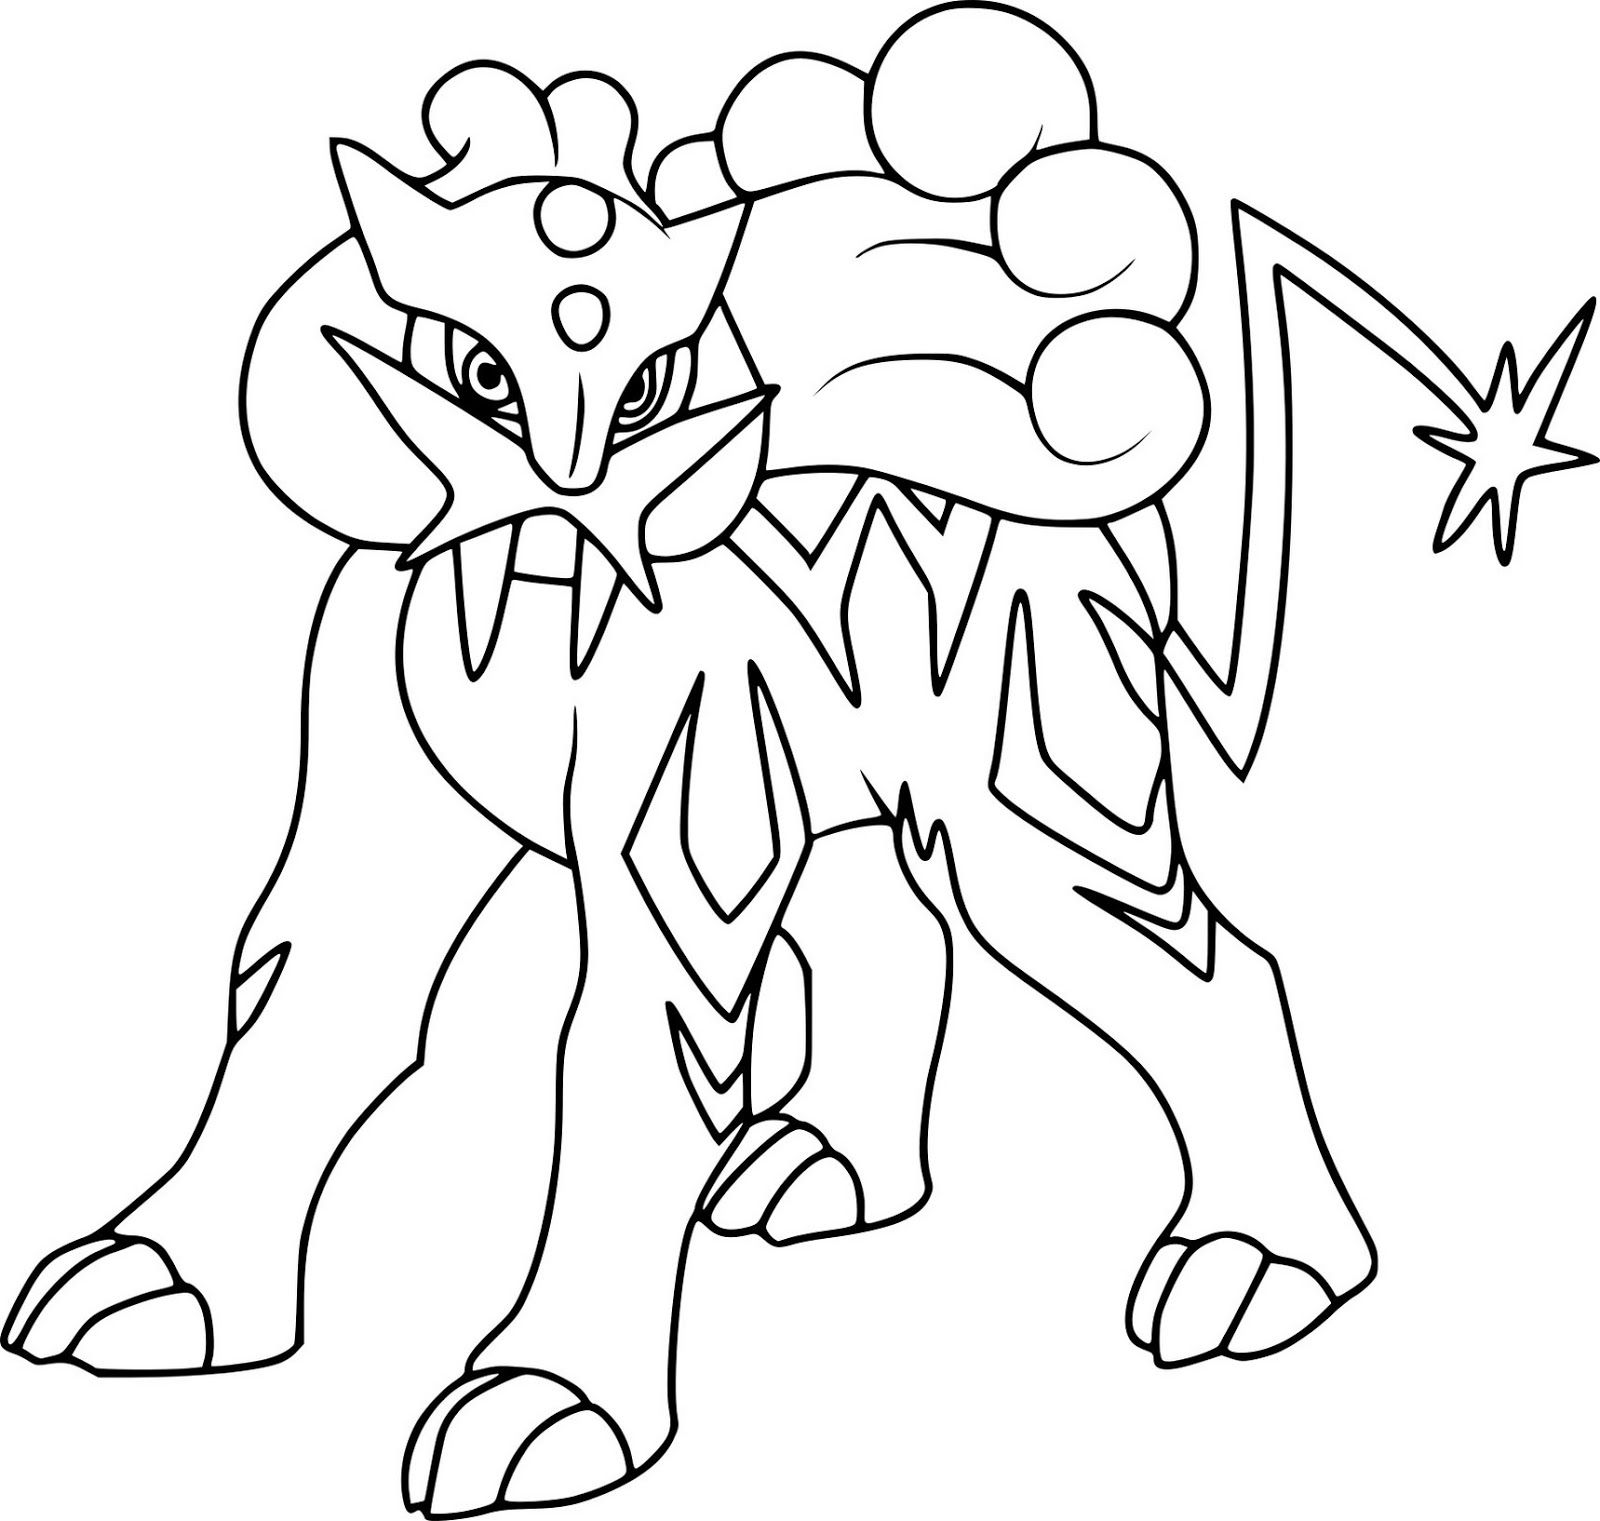 Raikou Pokemon Coloring Pages With Images Pokemon Coloring